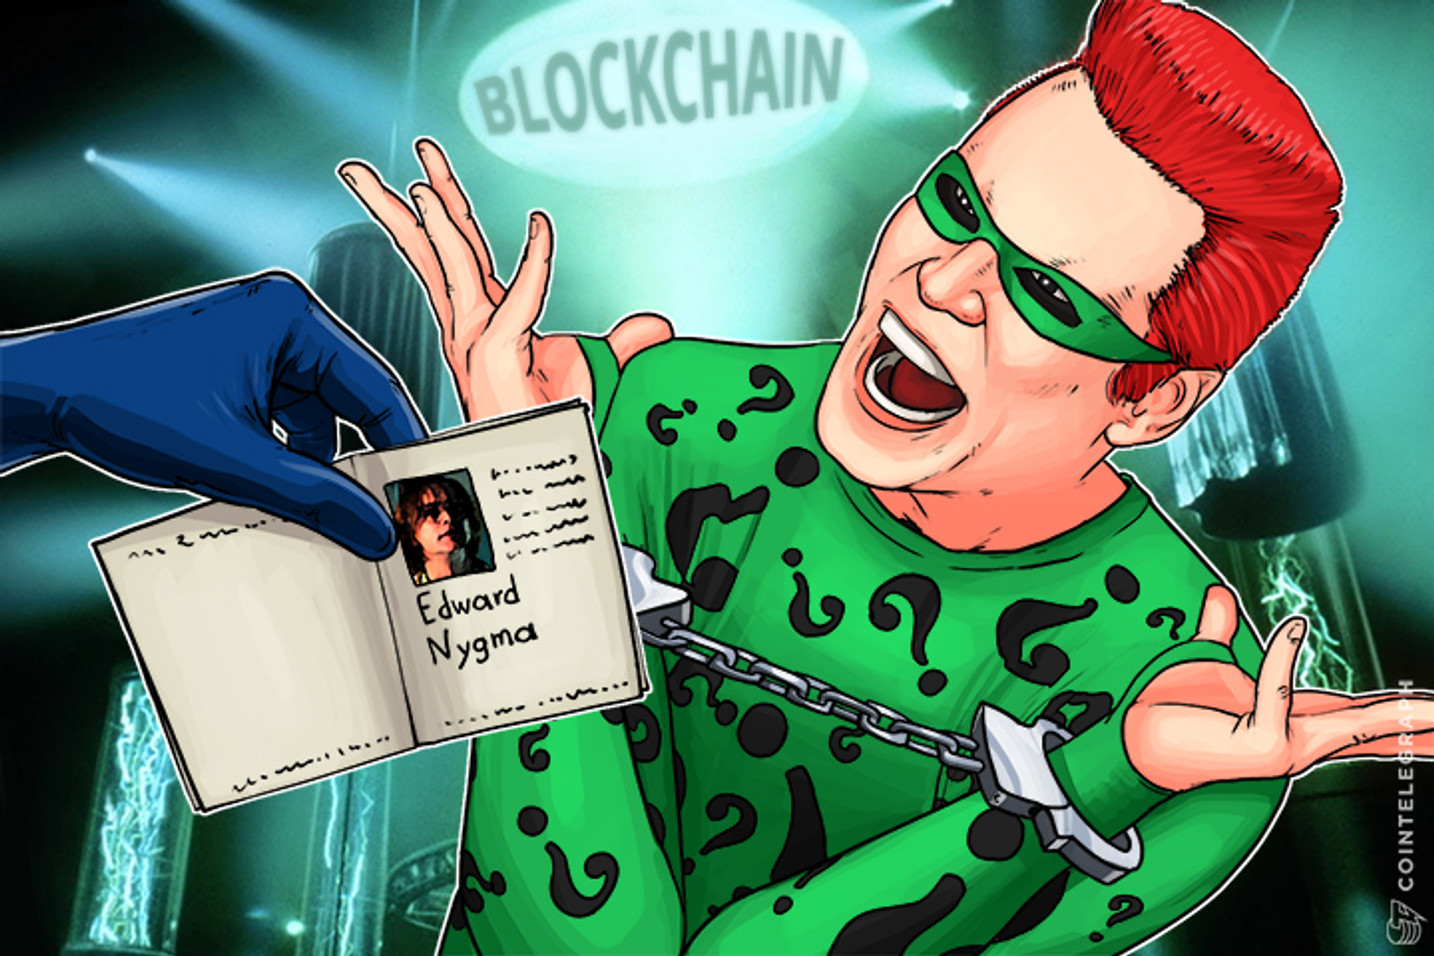 Blockchain-Based Smart Identity Will Free World of Paper ID's